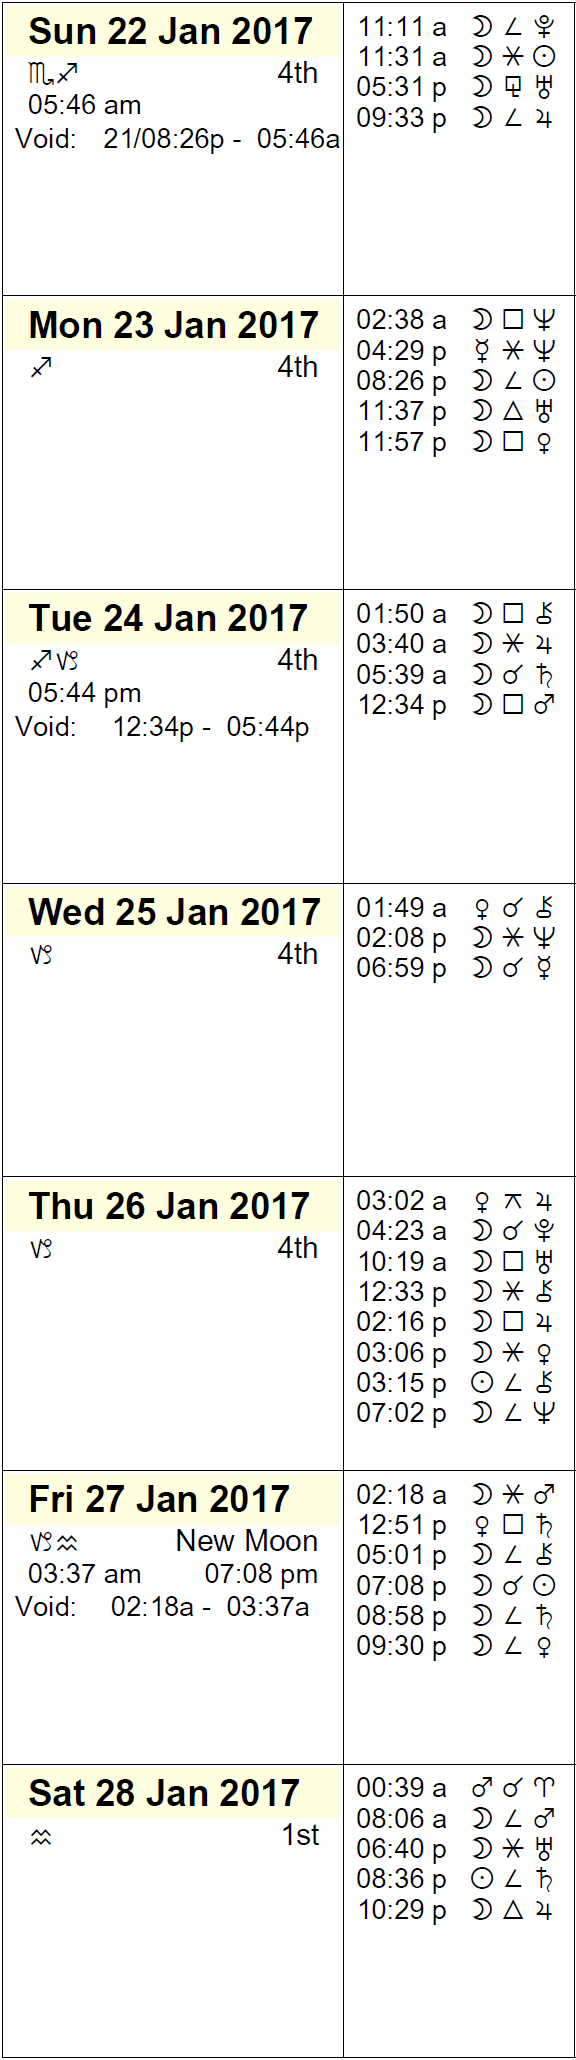 This Week in Astrology Calendar for January 22 to 28, 2017